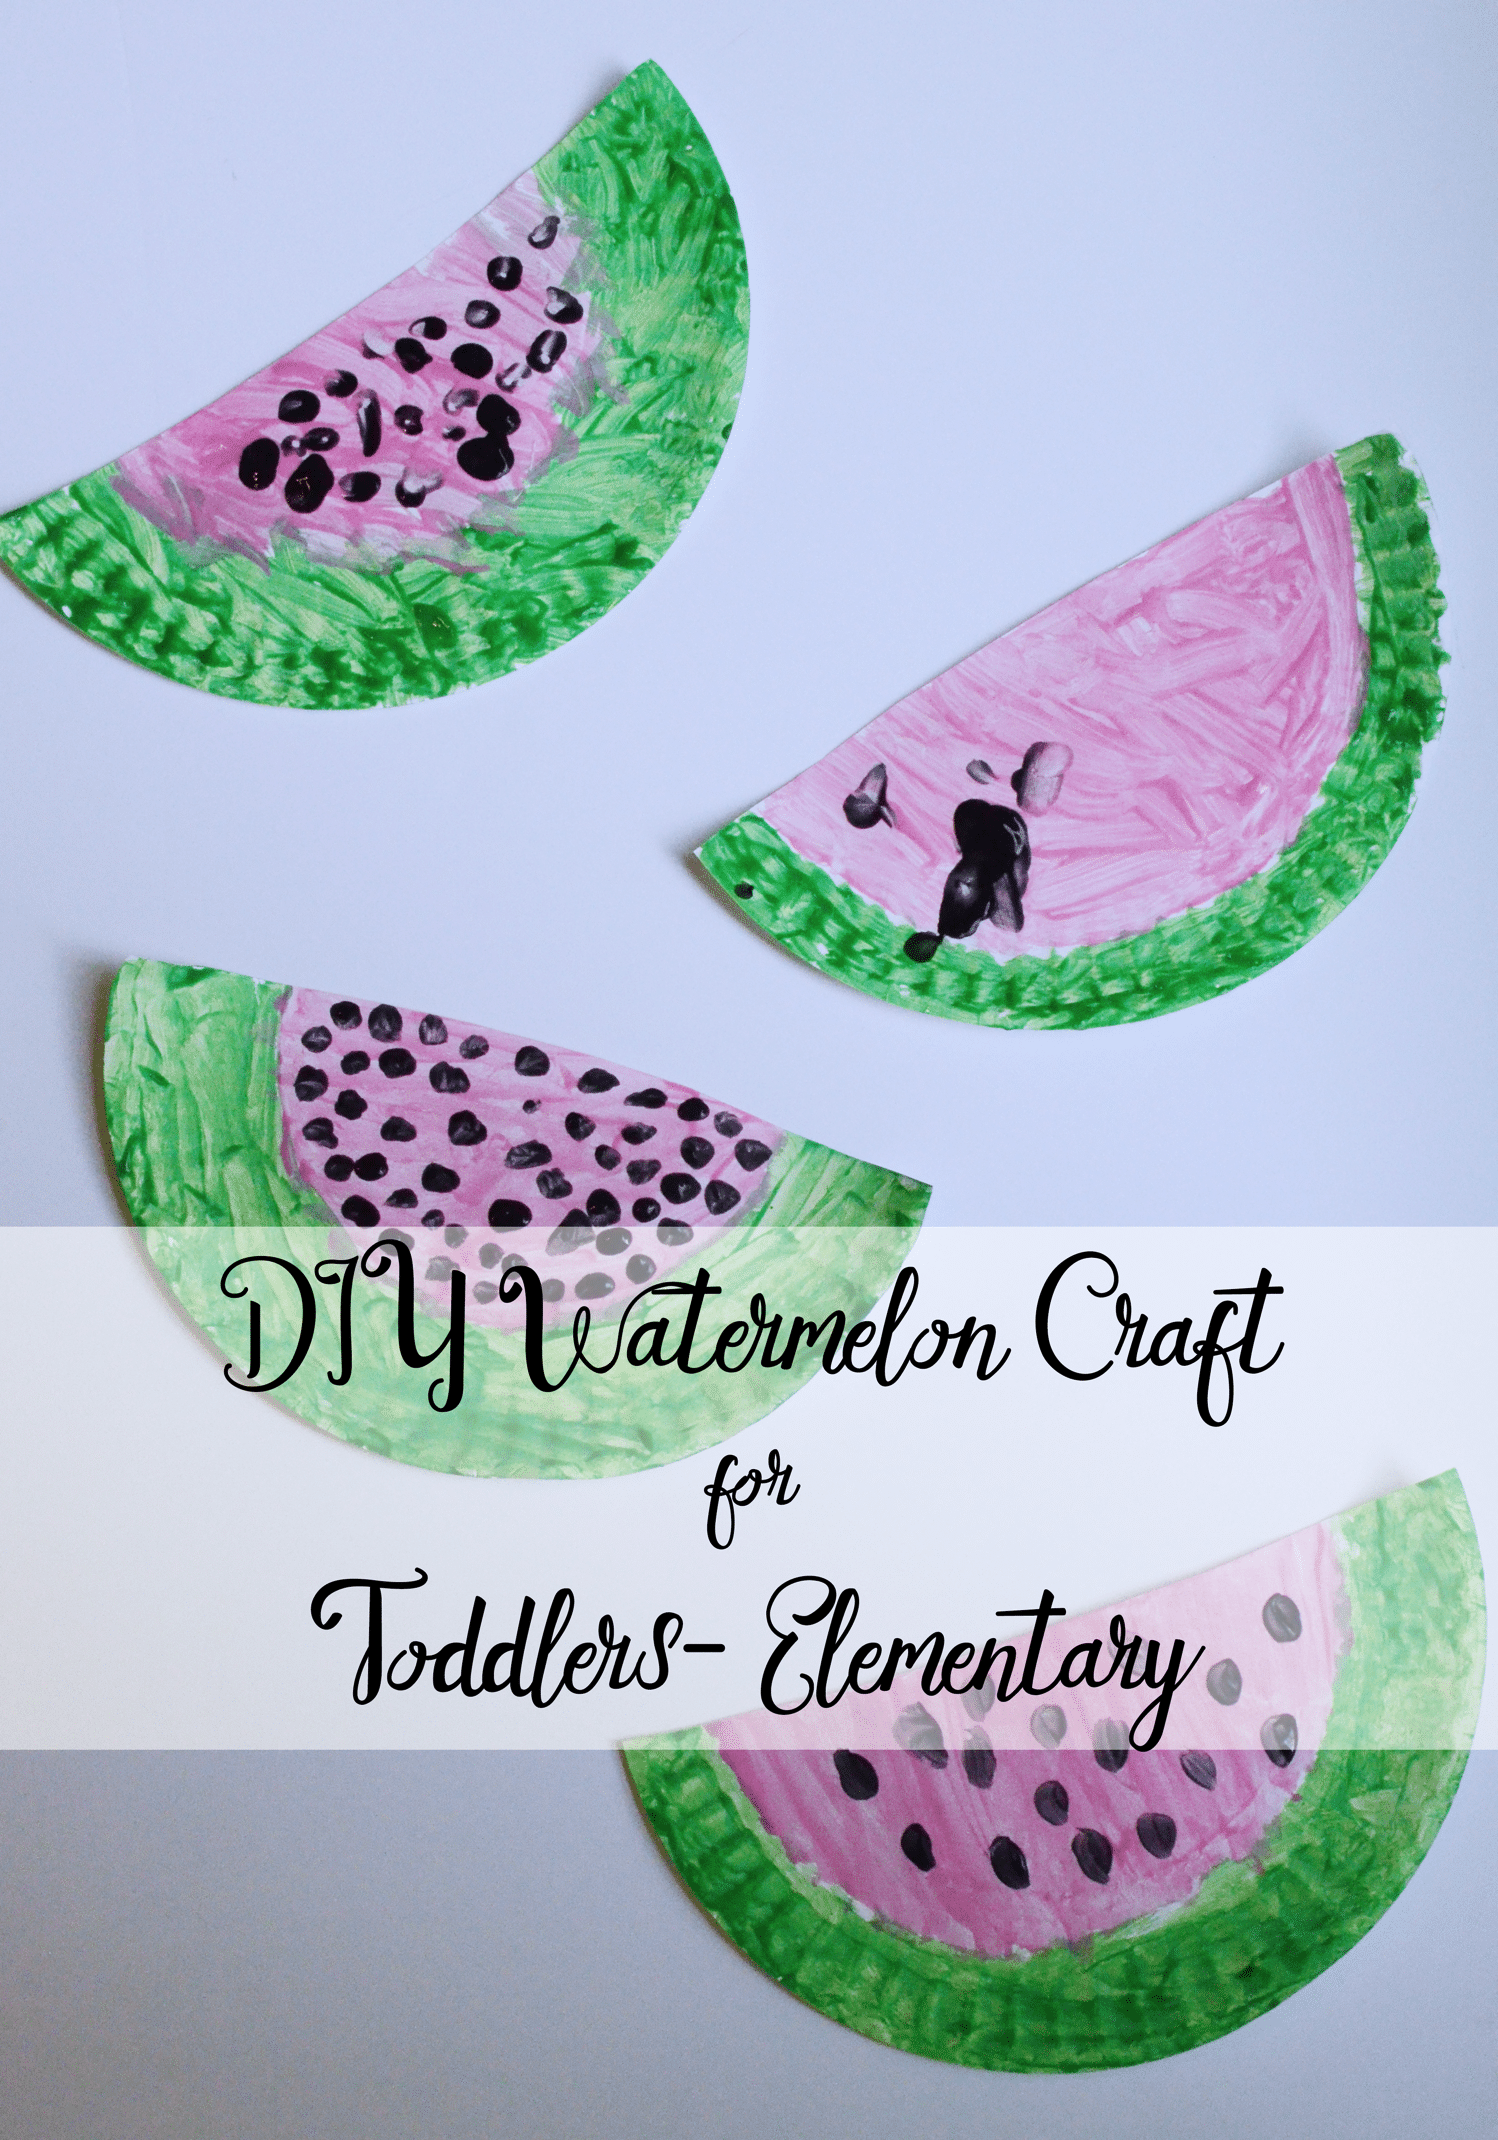 DIY Watermelon Craft For Toddlers